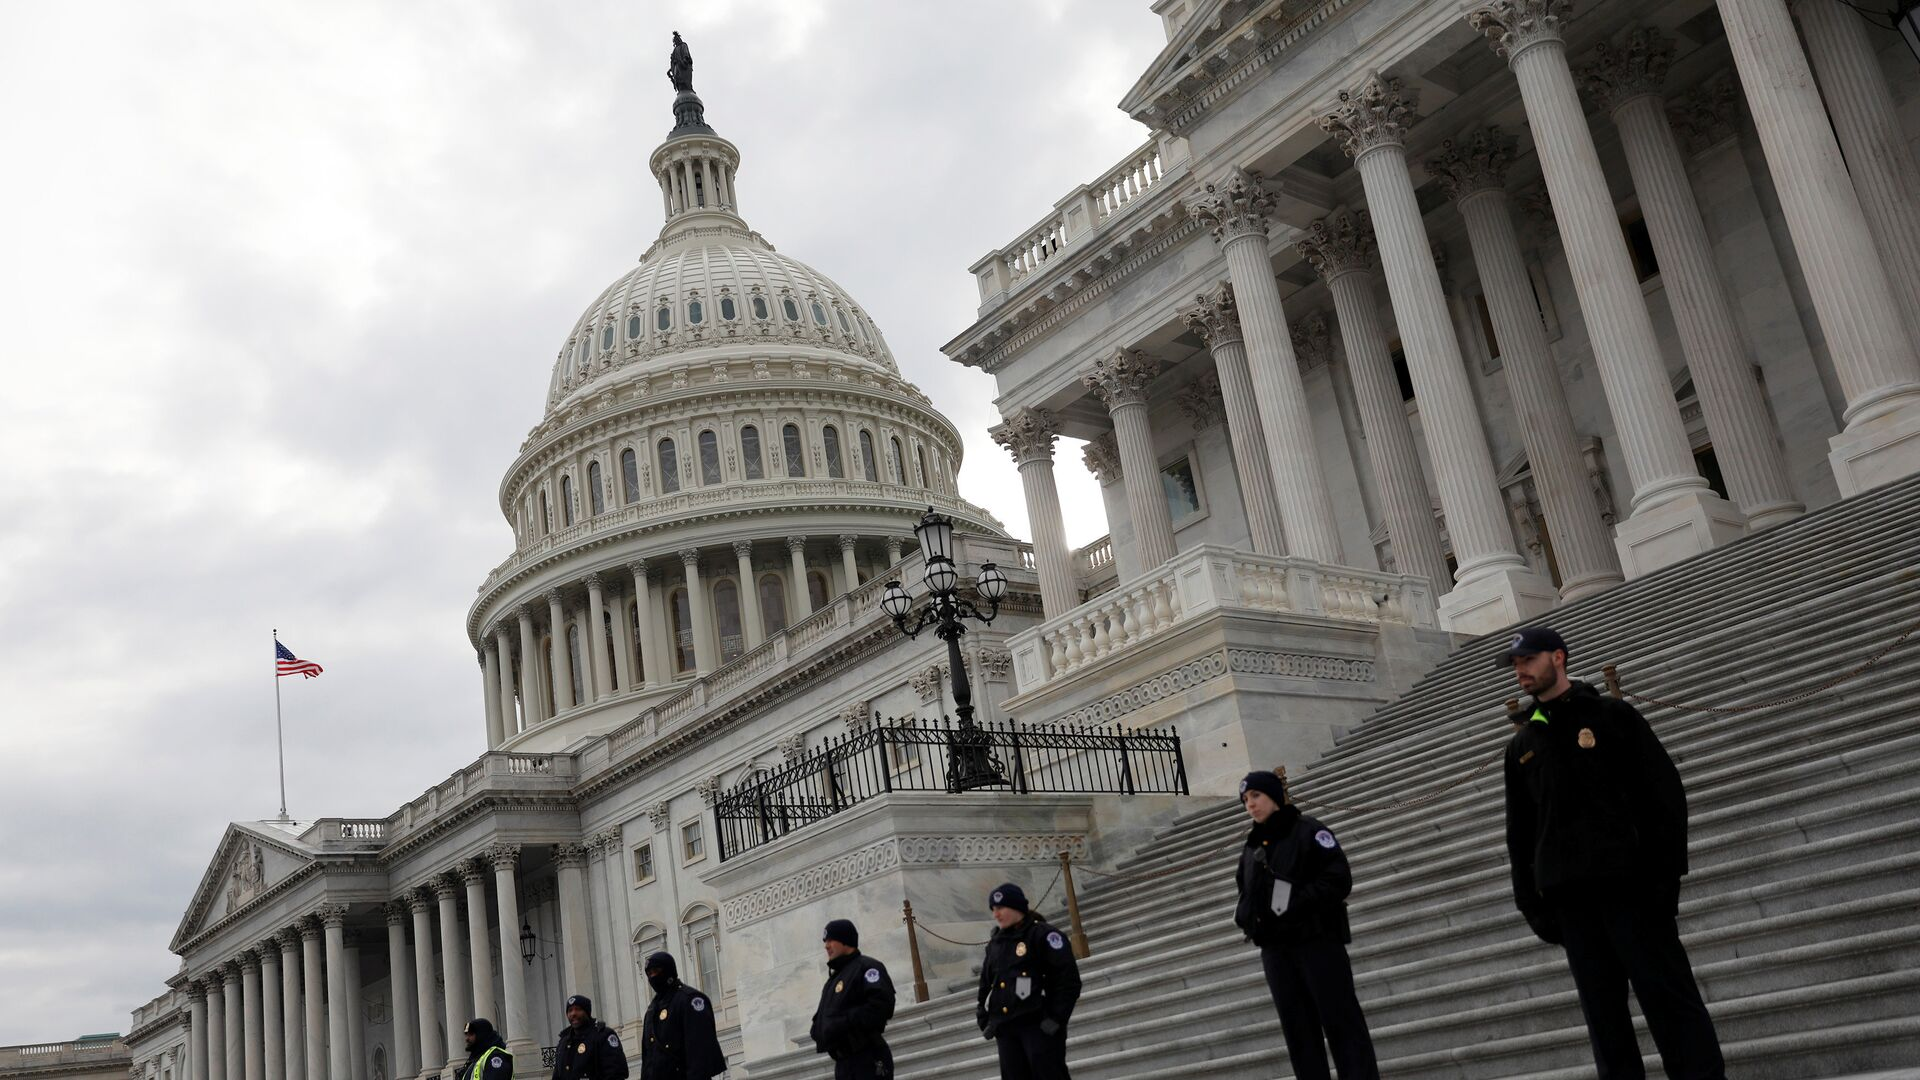 Capitol Hill Police officers look on as activists gather at the US Capitol to protest President Donald Trump's executive actions on immigration in Washington January 29, 2017 - Sputnik Italia, 1920, 02.08.2021